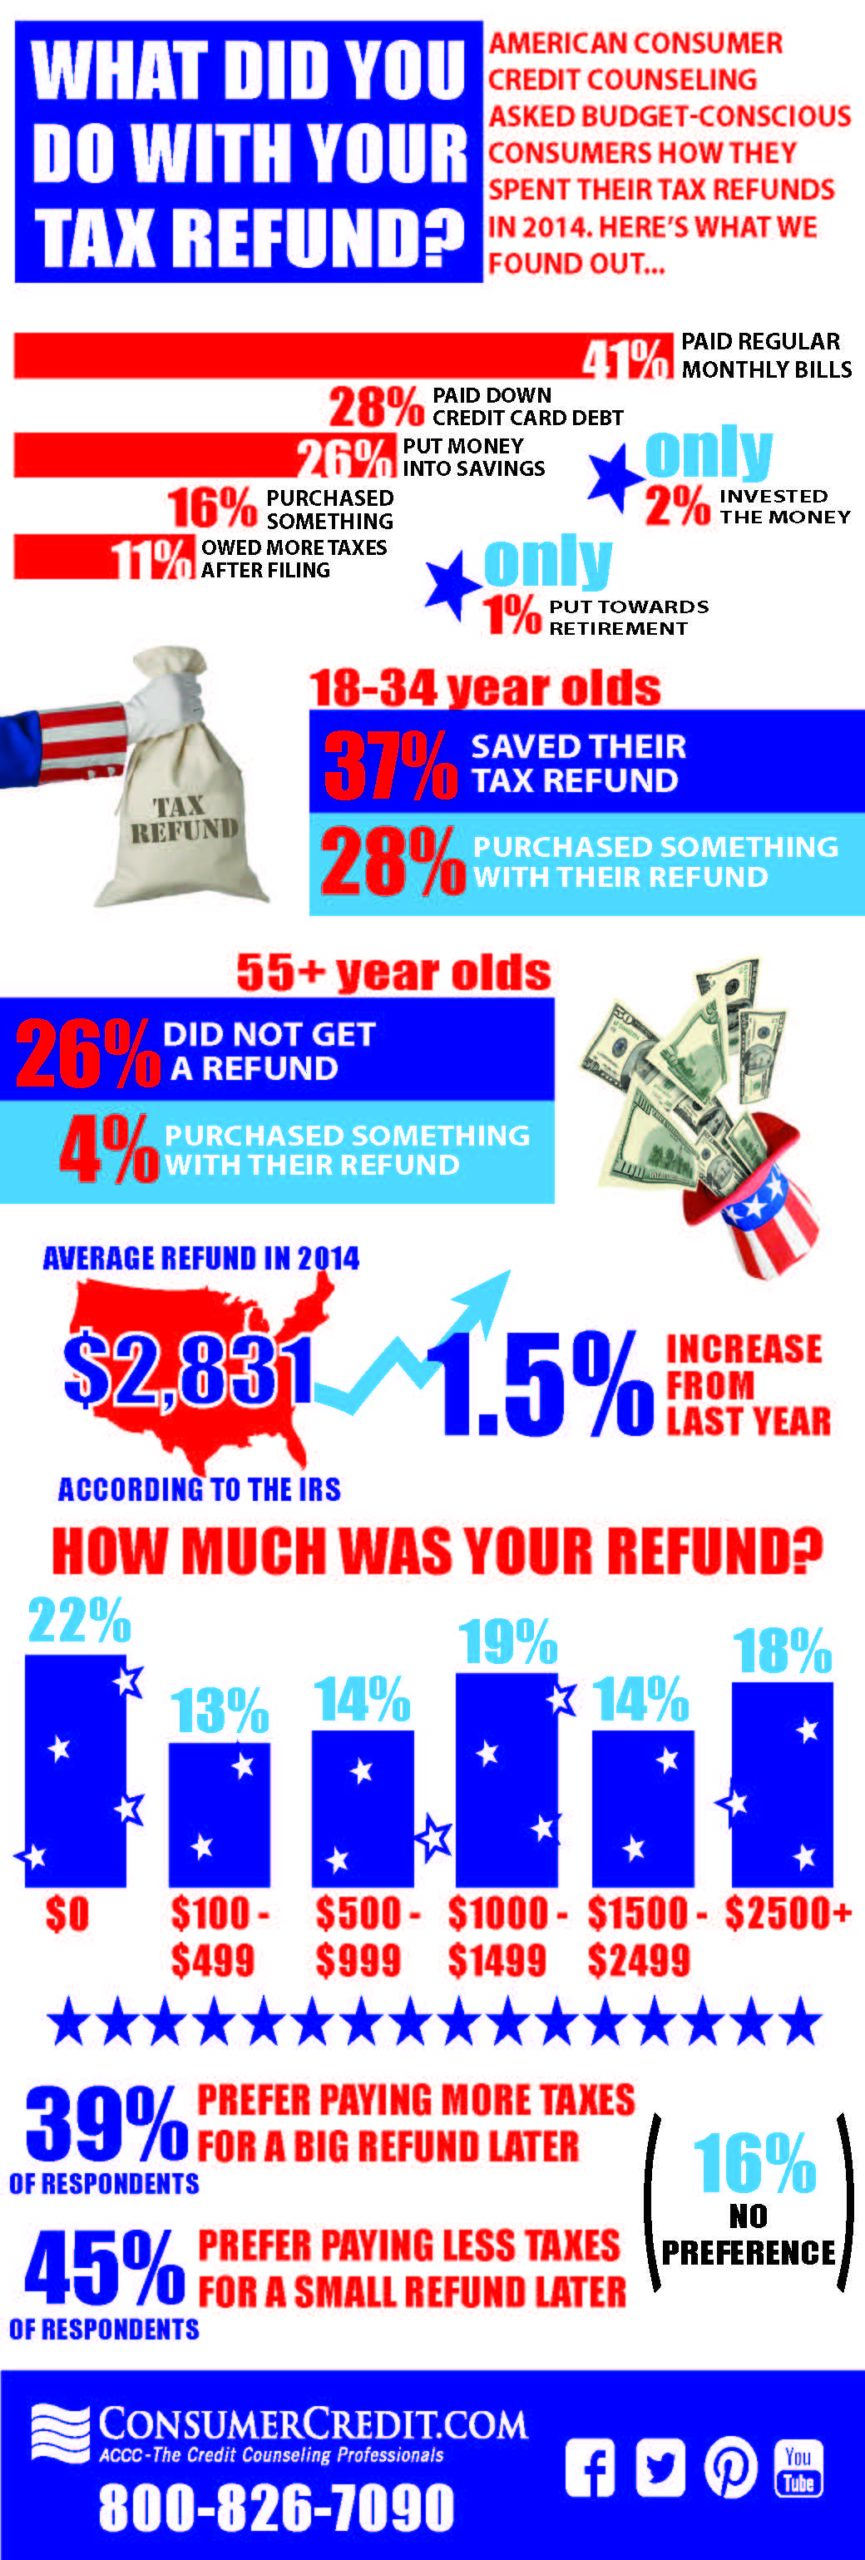 What Did You Do With Your Tax Refund